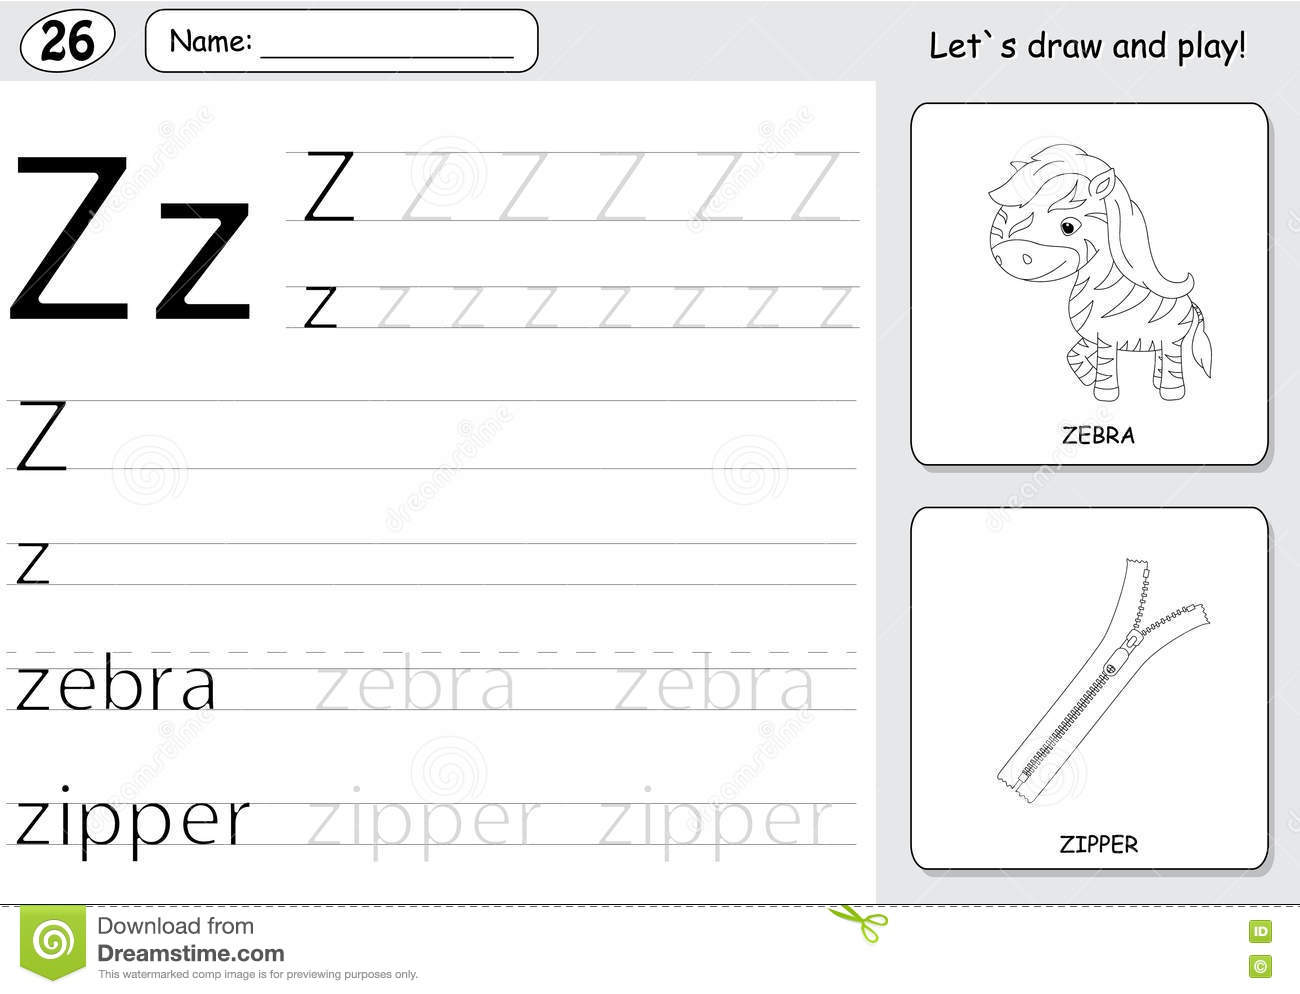 Cartoon Zebra And Zipper Alphabet Tracing Worksheet